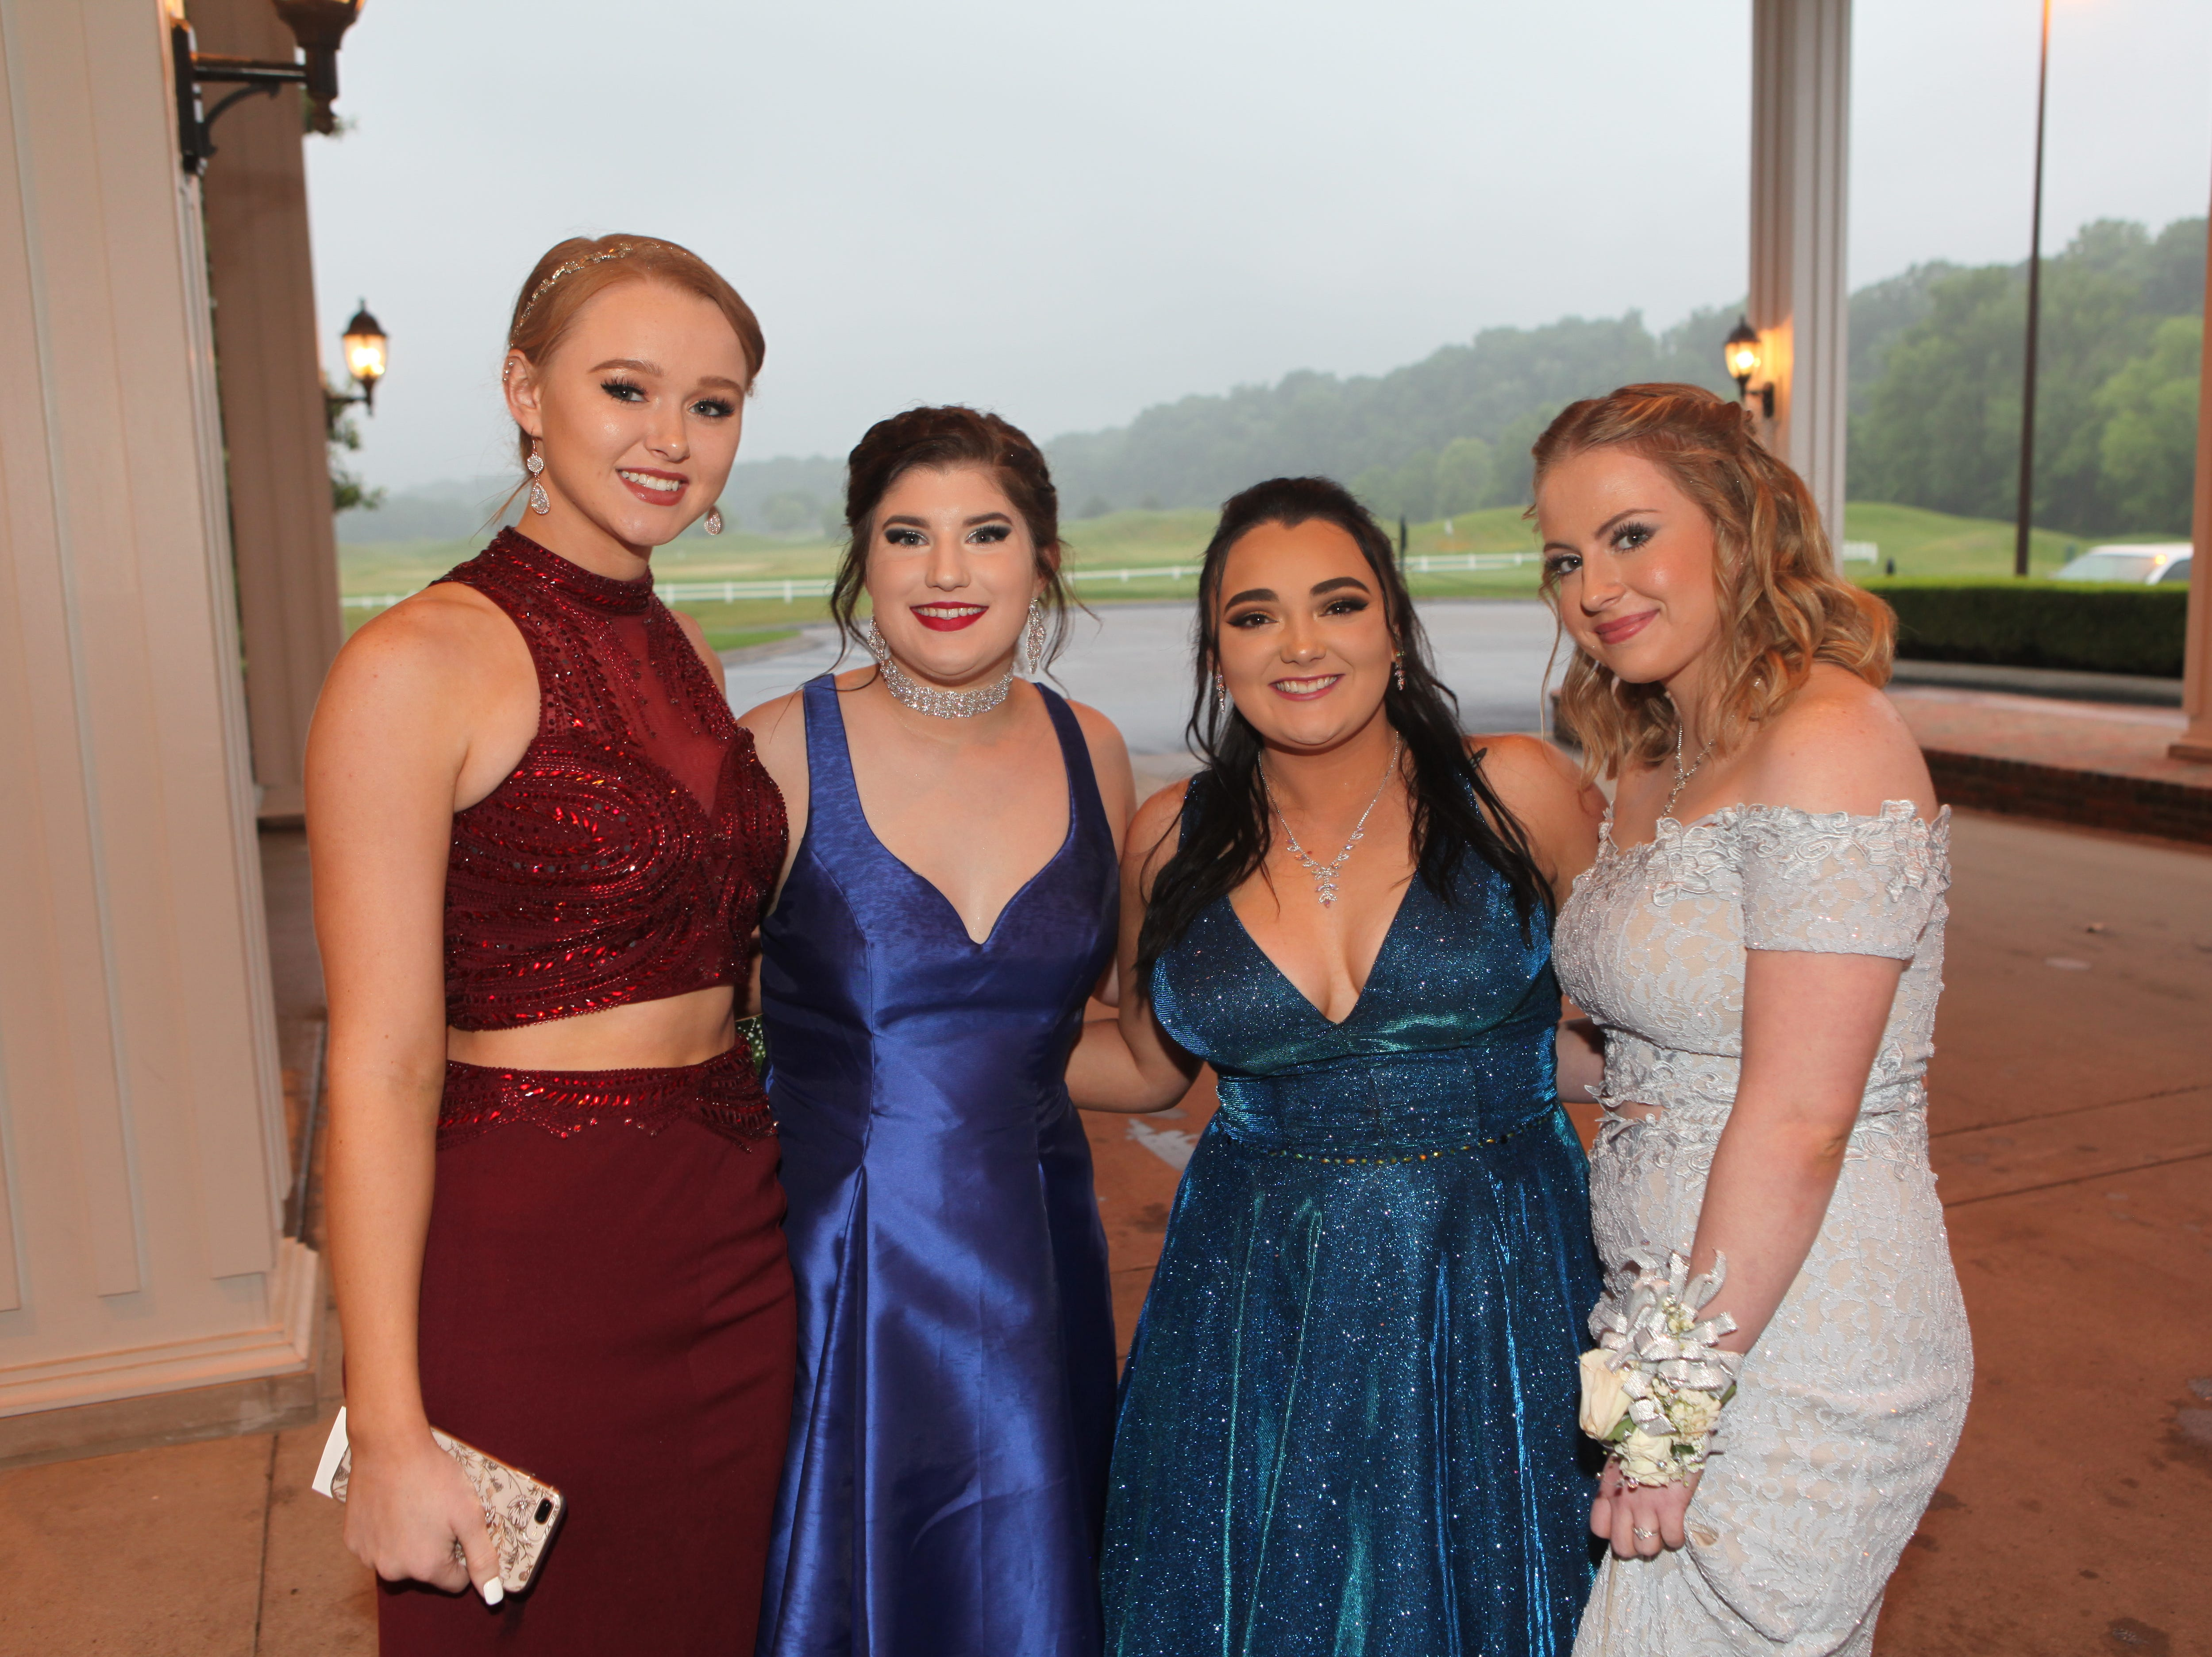 Jordan Odell, Allison Phillips, Brianna Deloach, and Arianna Ray at Sycamore High School's prom on Saturday, May 11, 2019, at Gaylord Springs Golf Links Clubhouse.